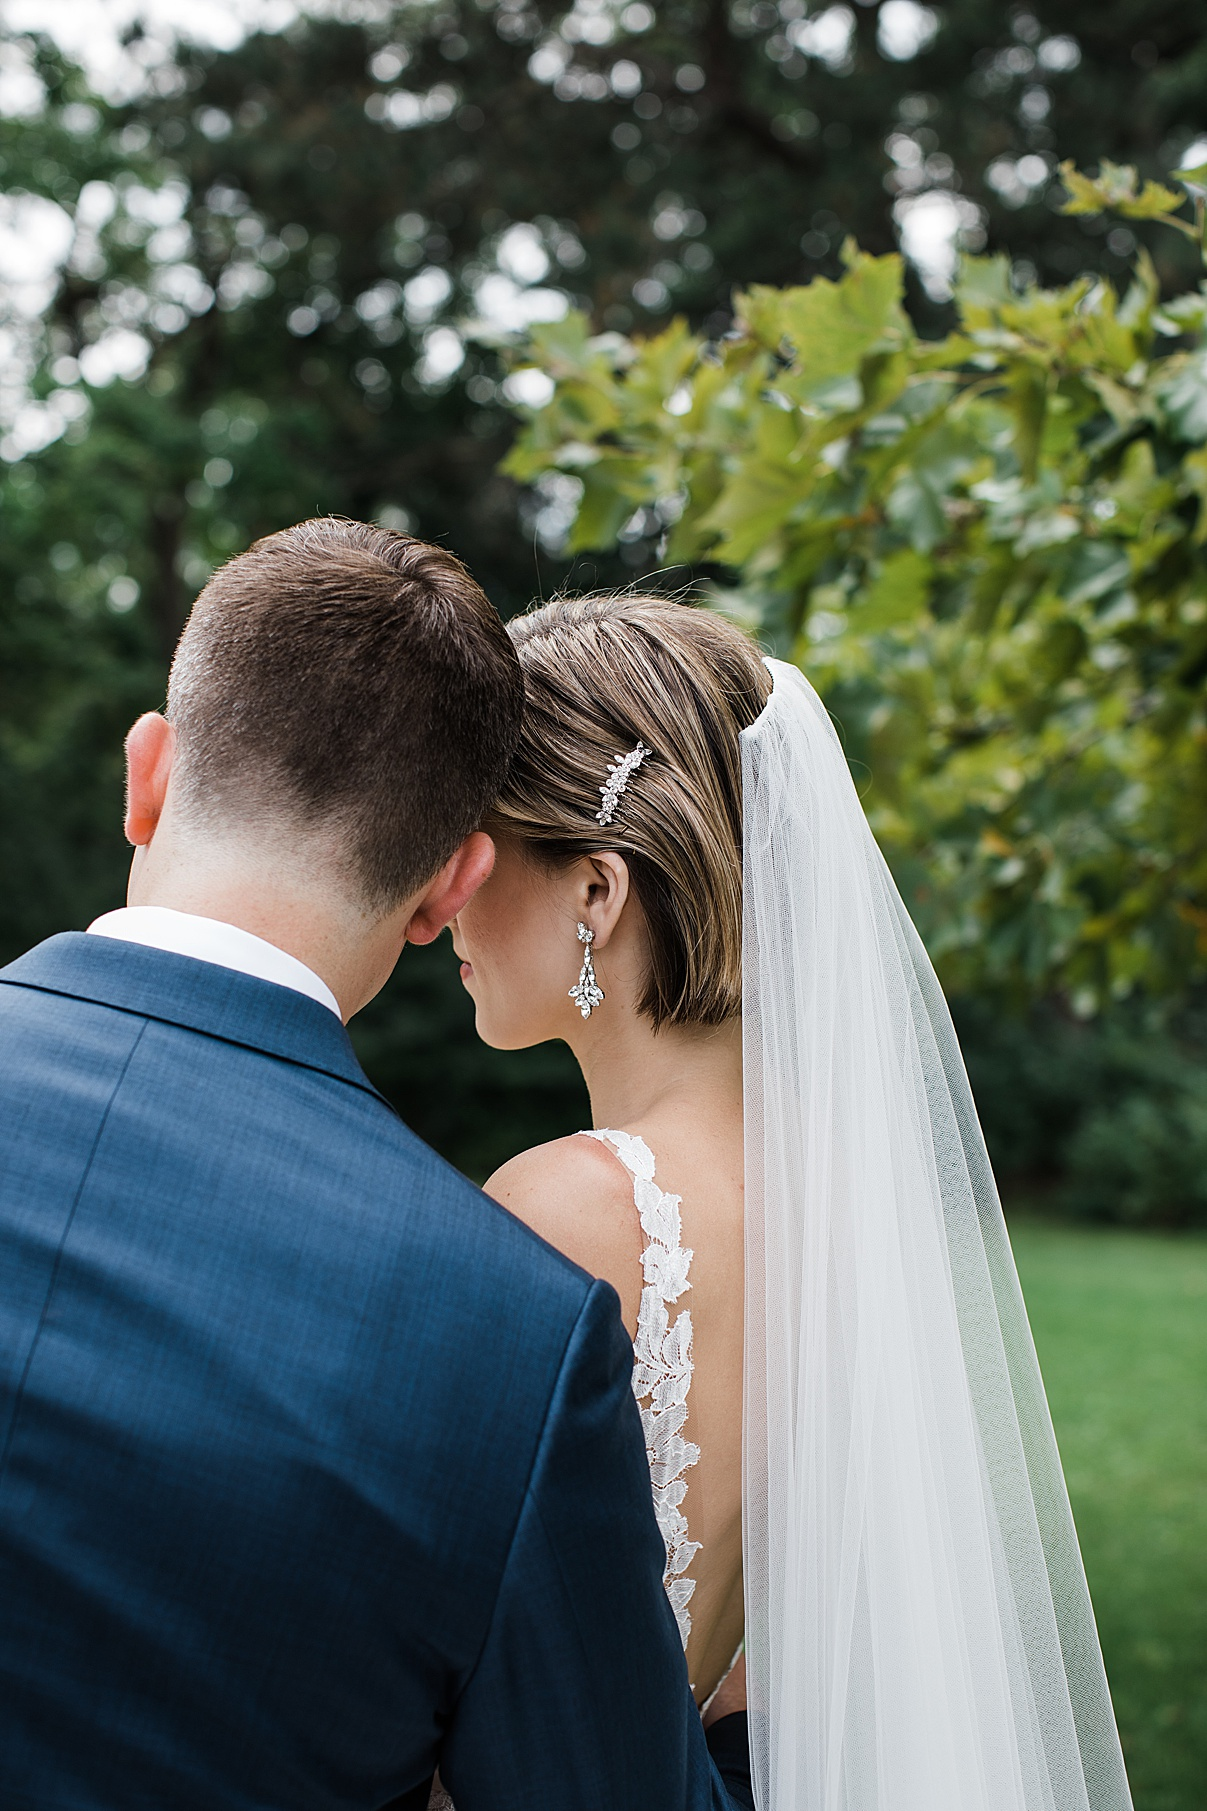 Bride and groom rest heads on each other| Harding Waterfront Estate Wedding| Ontario wedding photographer| Toronto wedding photographer| 3 Photography | 3photography.ca